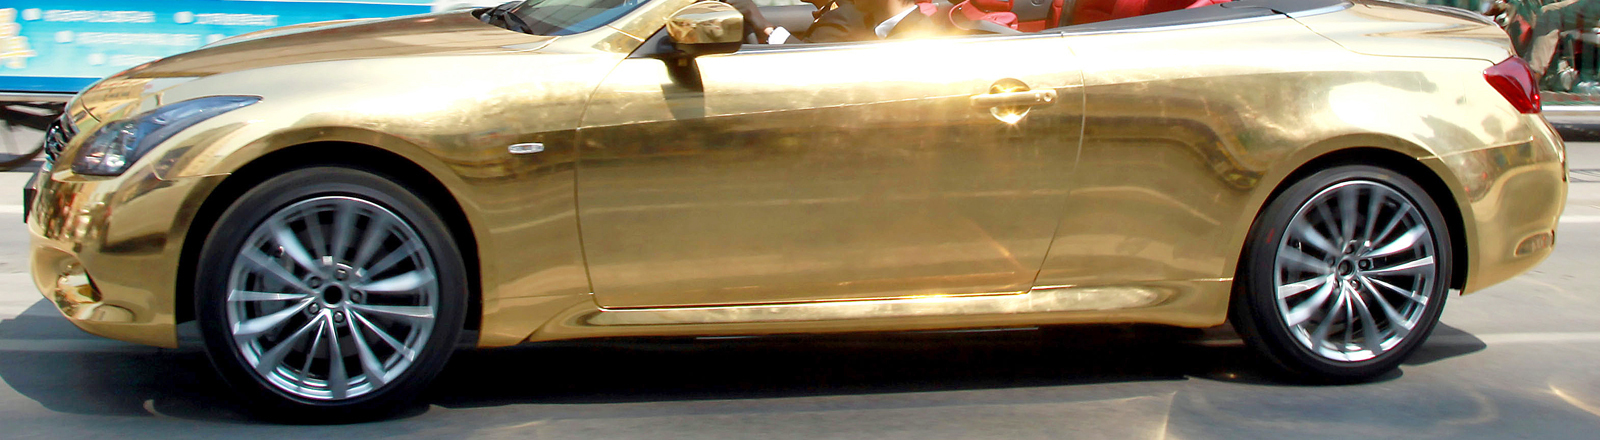 A sports car covered by gold foils drives on Huaihai Road in Nanjing, capital of east Chinas Jiangsu Province, March 29, 2011. The car, part of a promotional event of a local company, was trailered by the police as it attracted a crowd of onlookers which caused a traffic congestion and it has no license plate. Foto: Song Qiao